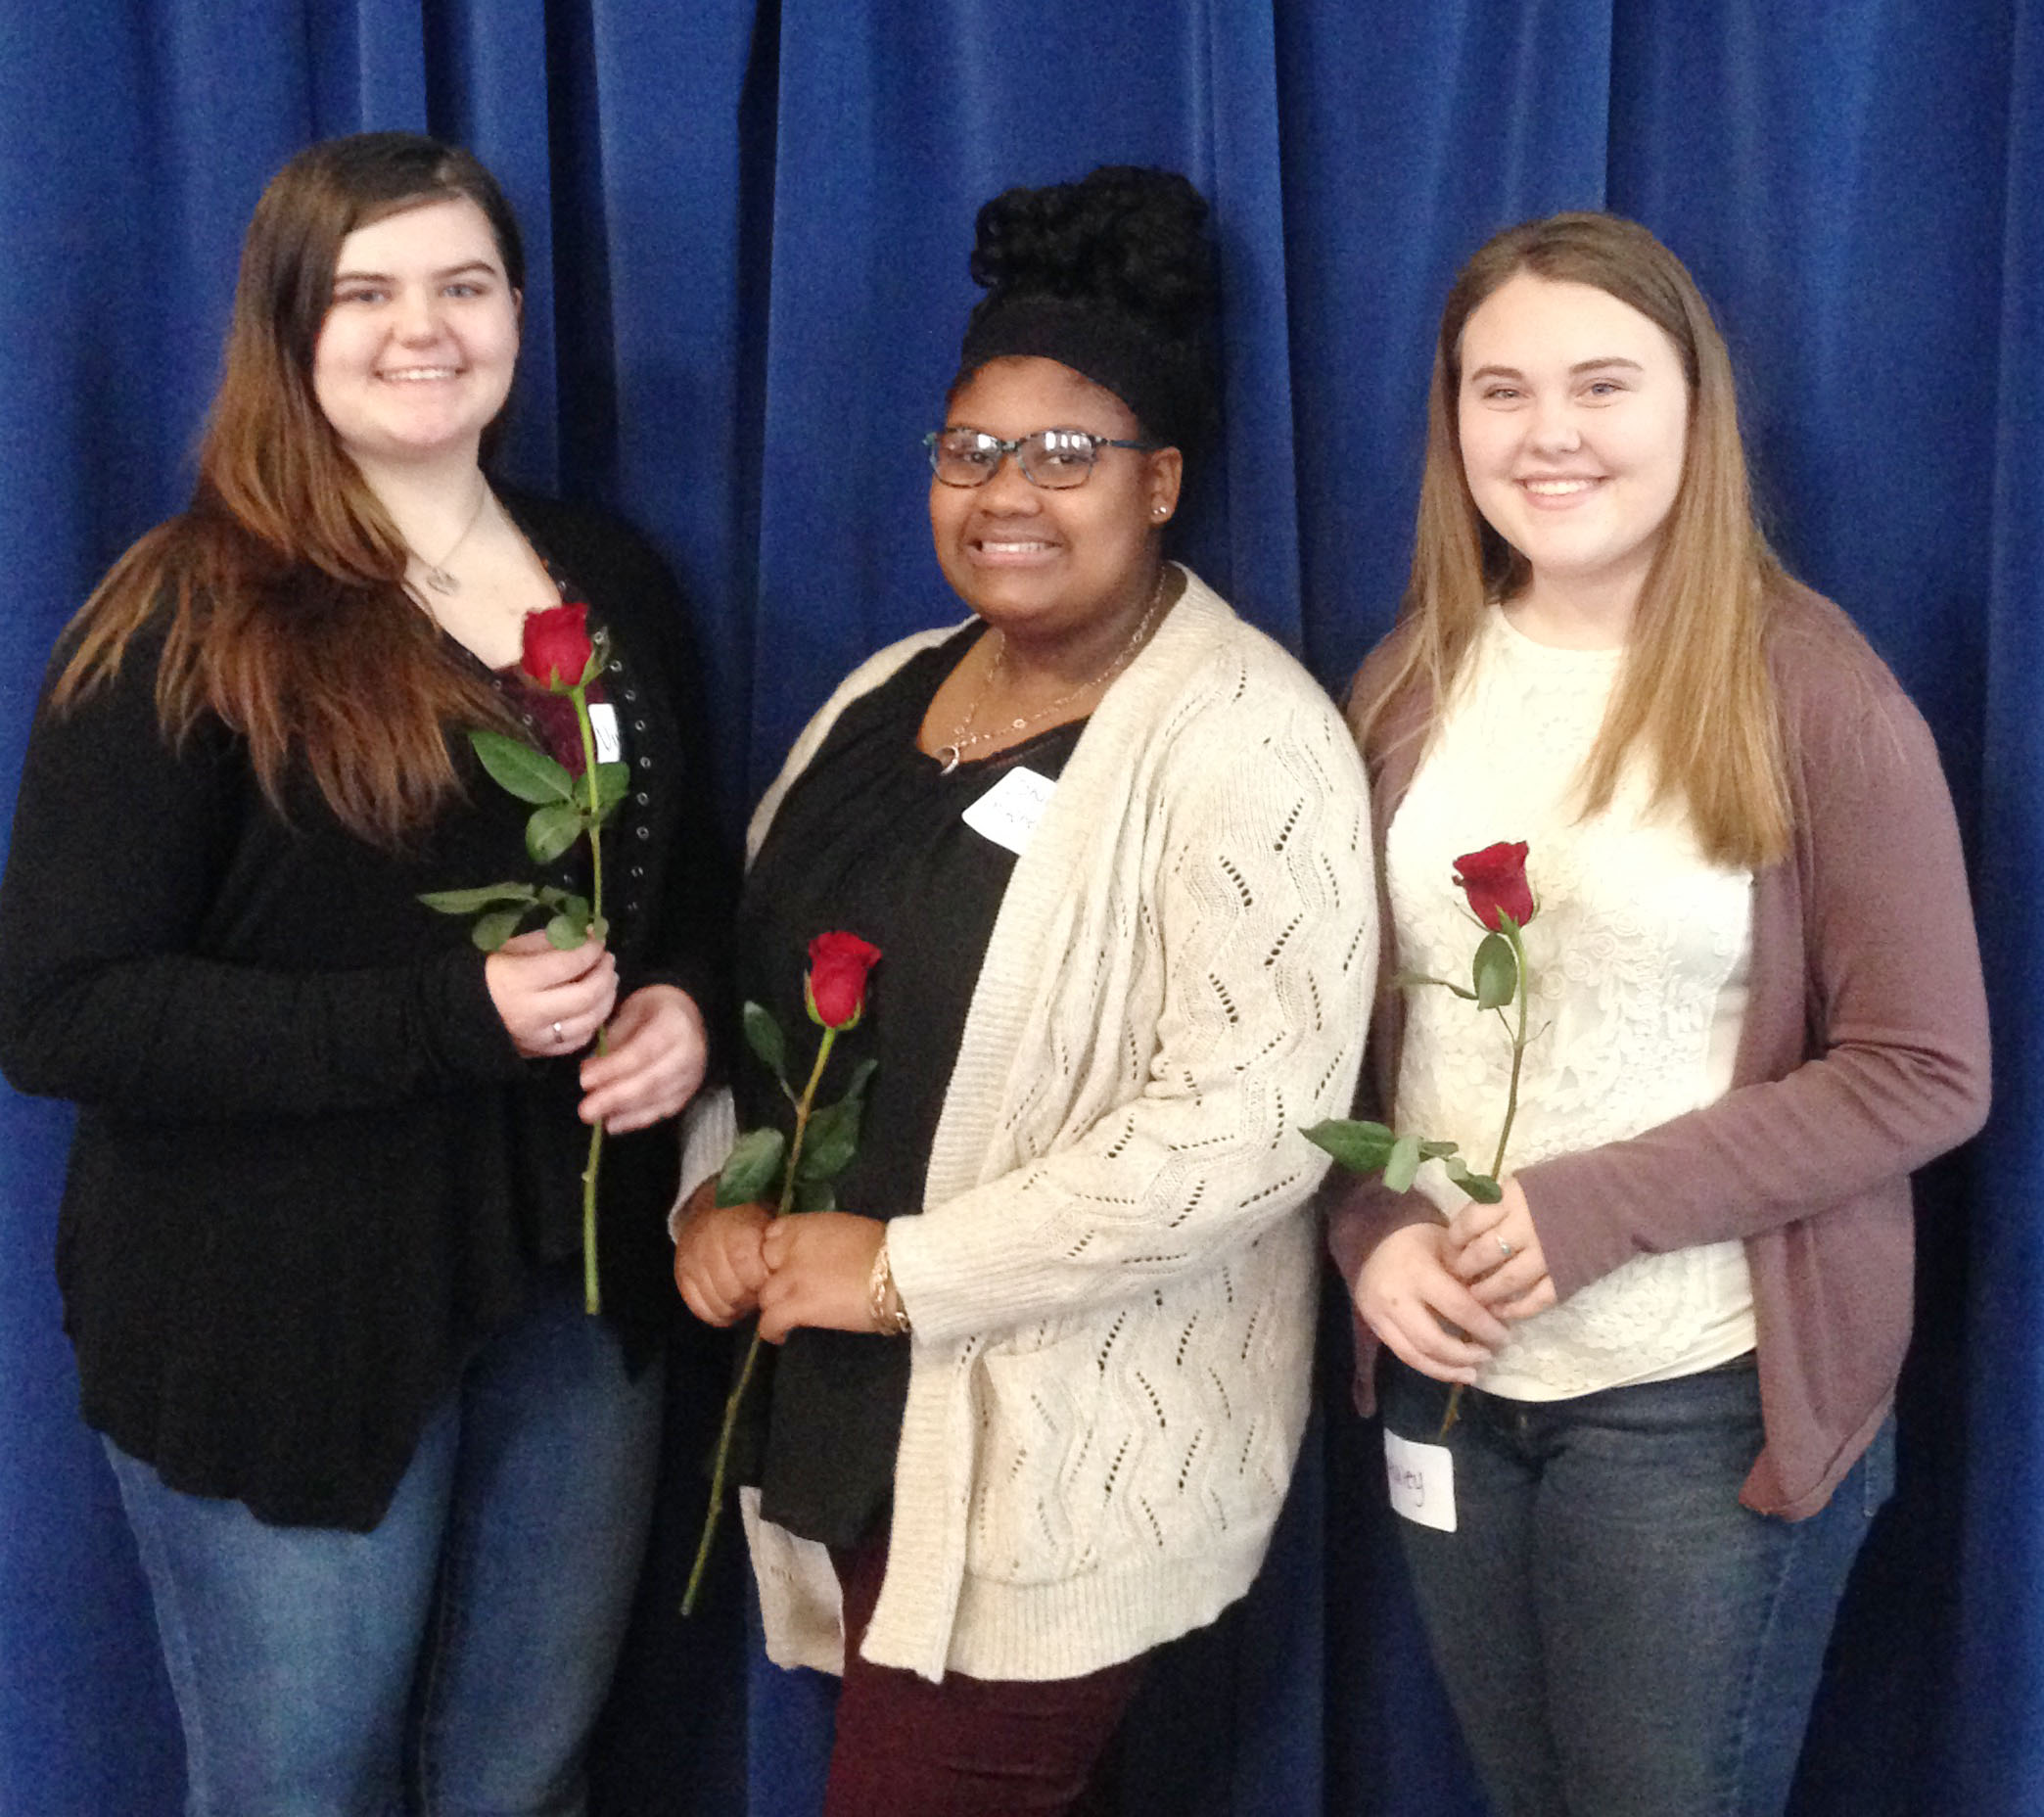 Three CHS FCCLA students were recently elected to serve as region officers. Those elected include, from left, are junior Vivian Brown, who will serve as vice president of parliamentary law; freshman Jakyia Mitchell, who is vice president of community service; and junior Haley Fitch, who will serve as vice president of individual programs.